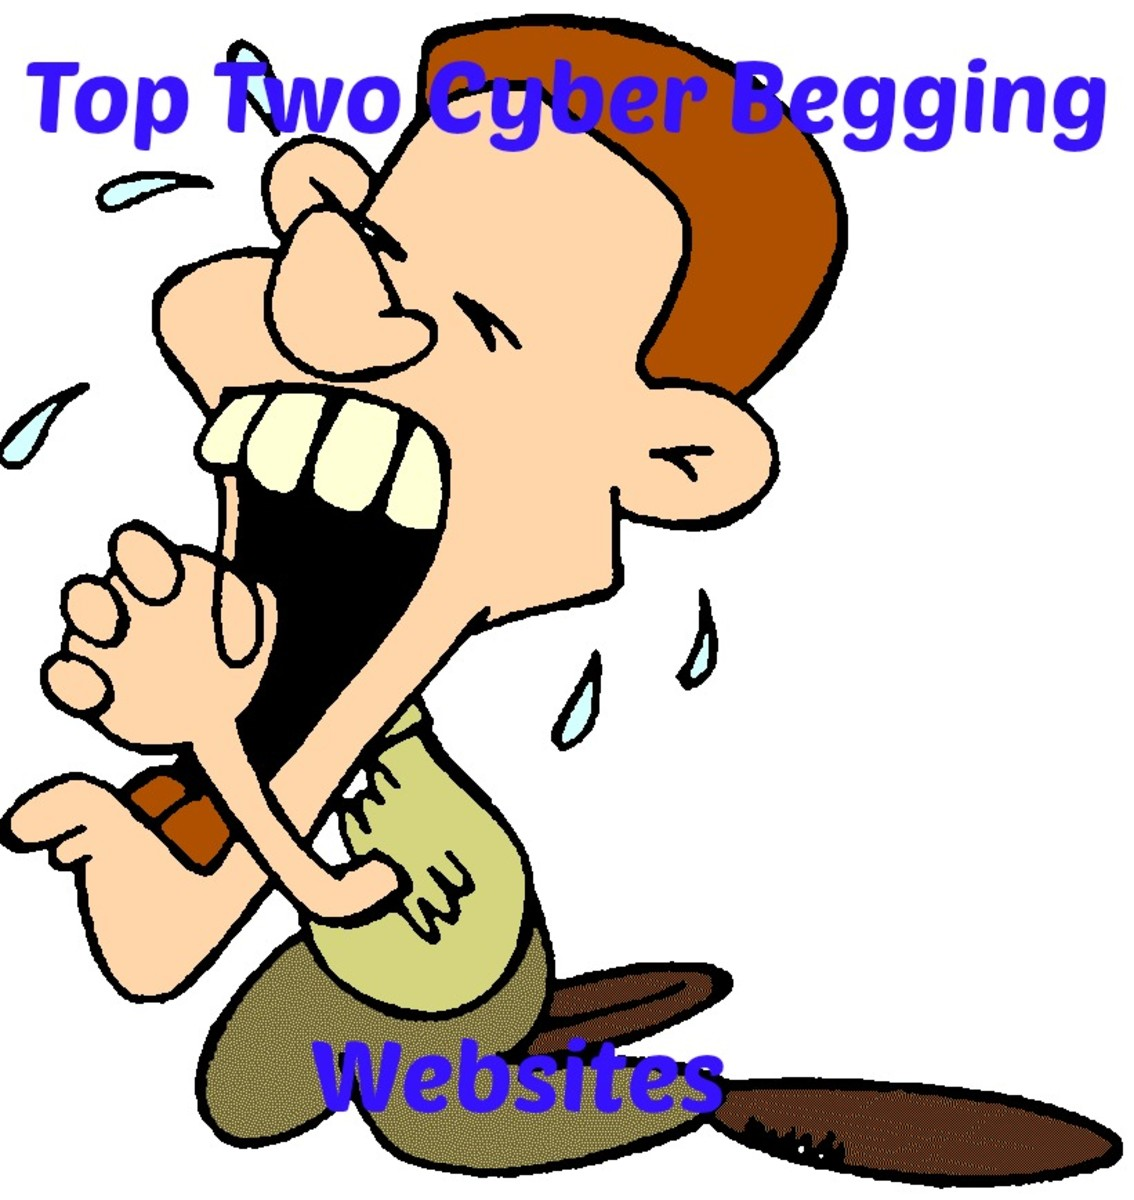 Top Websites For Cyber Begging